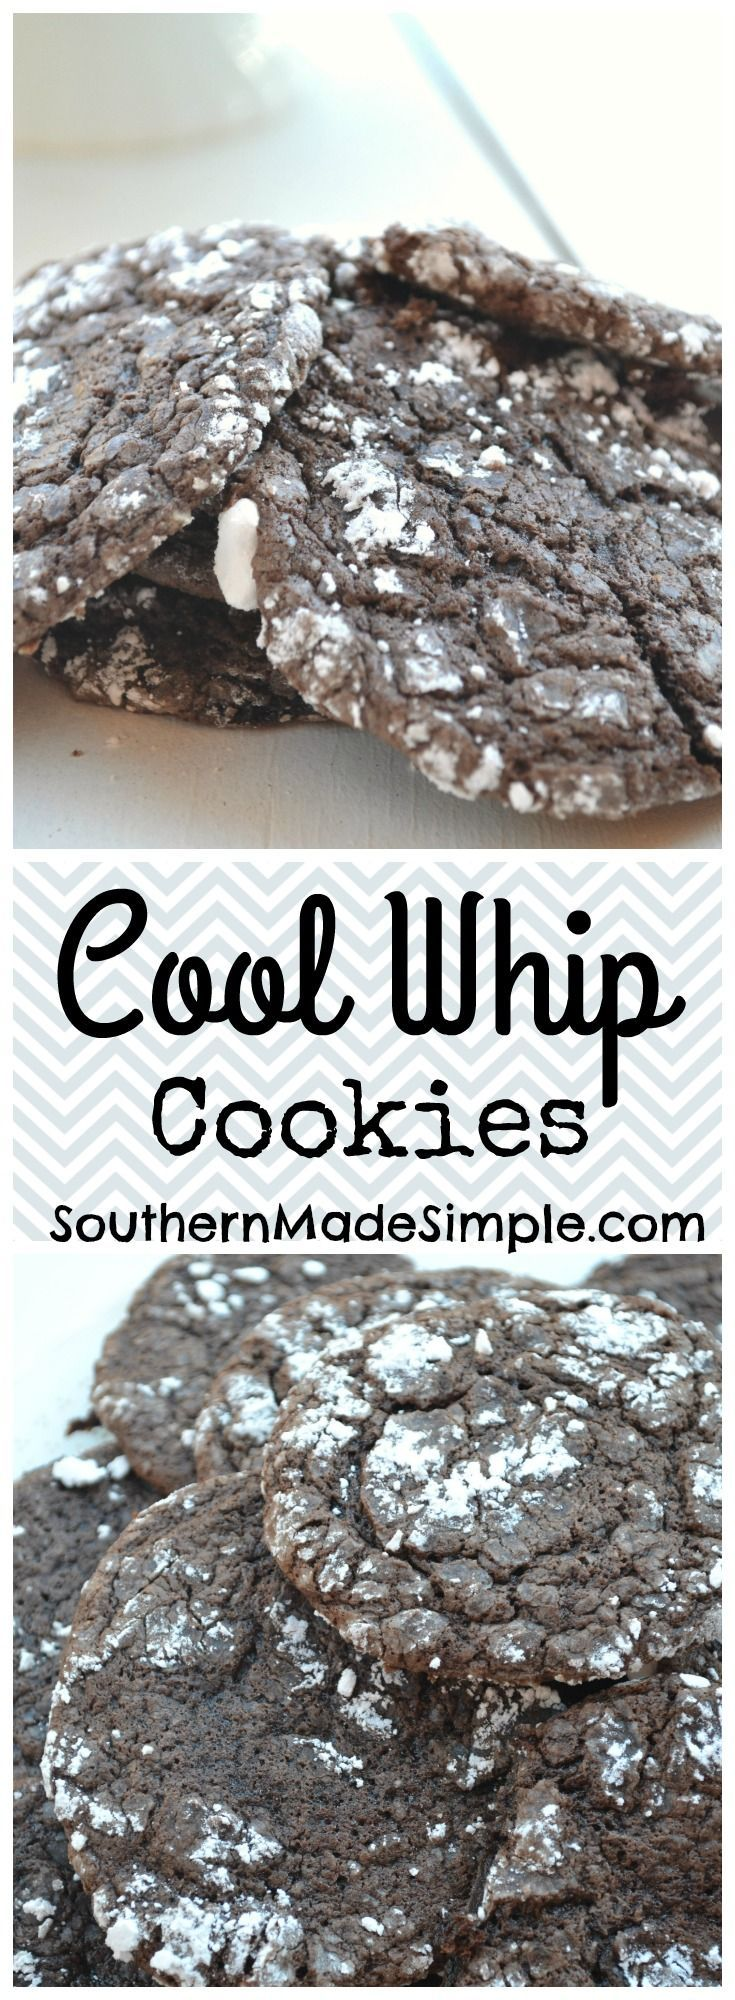 Easy Cool Whip Cookies - These deliciously sweet cookies are SO simple to make, and only require 4 ingredients! They're perfect to make in a flash and can be made using any flavor of cake mix that you'd like! #cookieswappingood